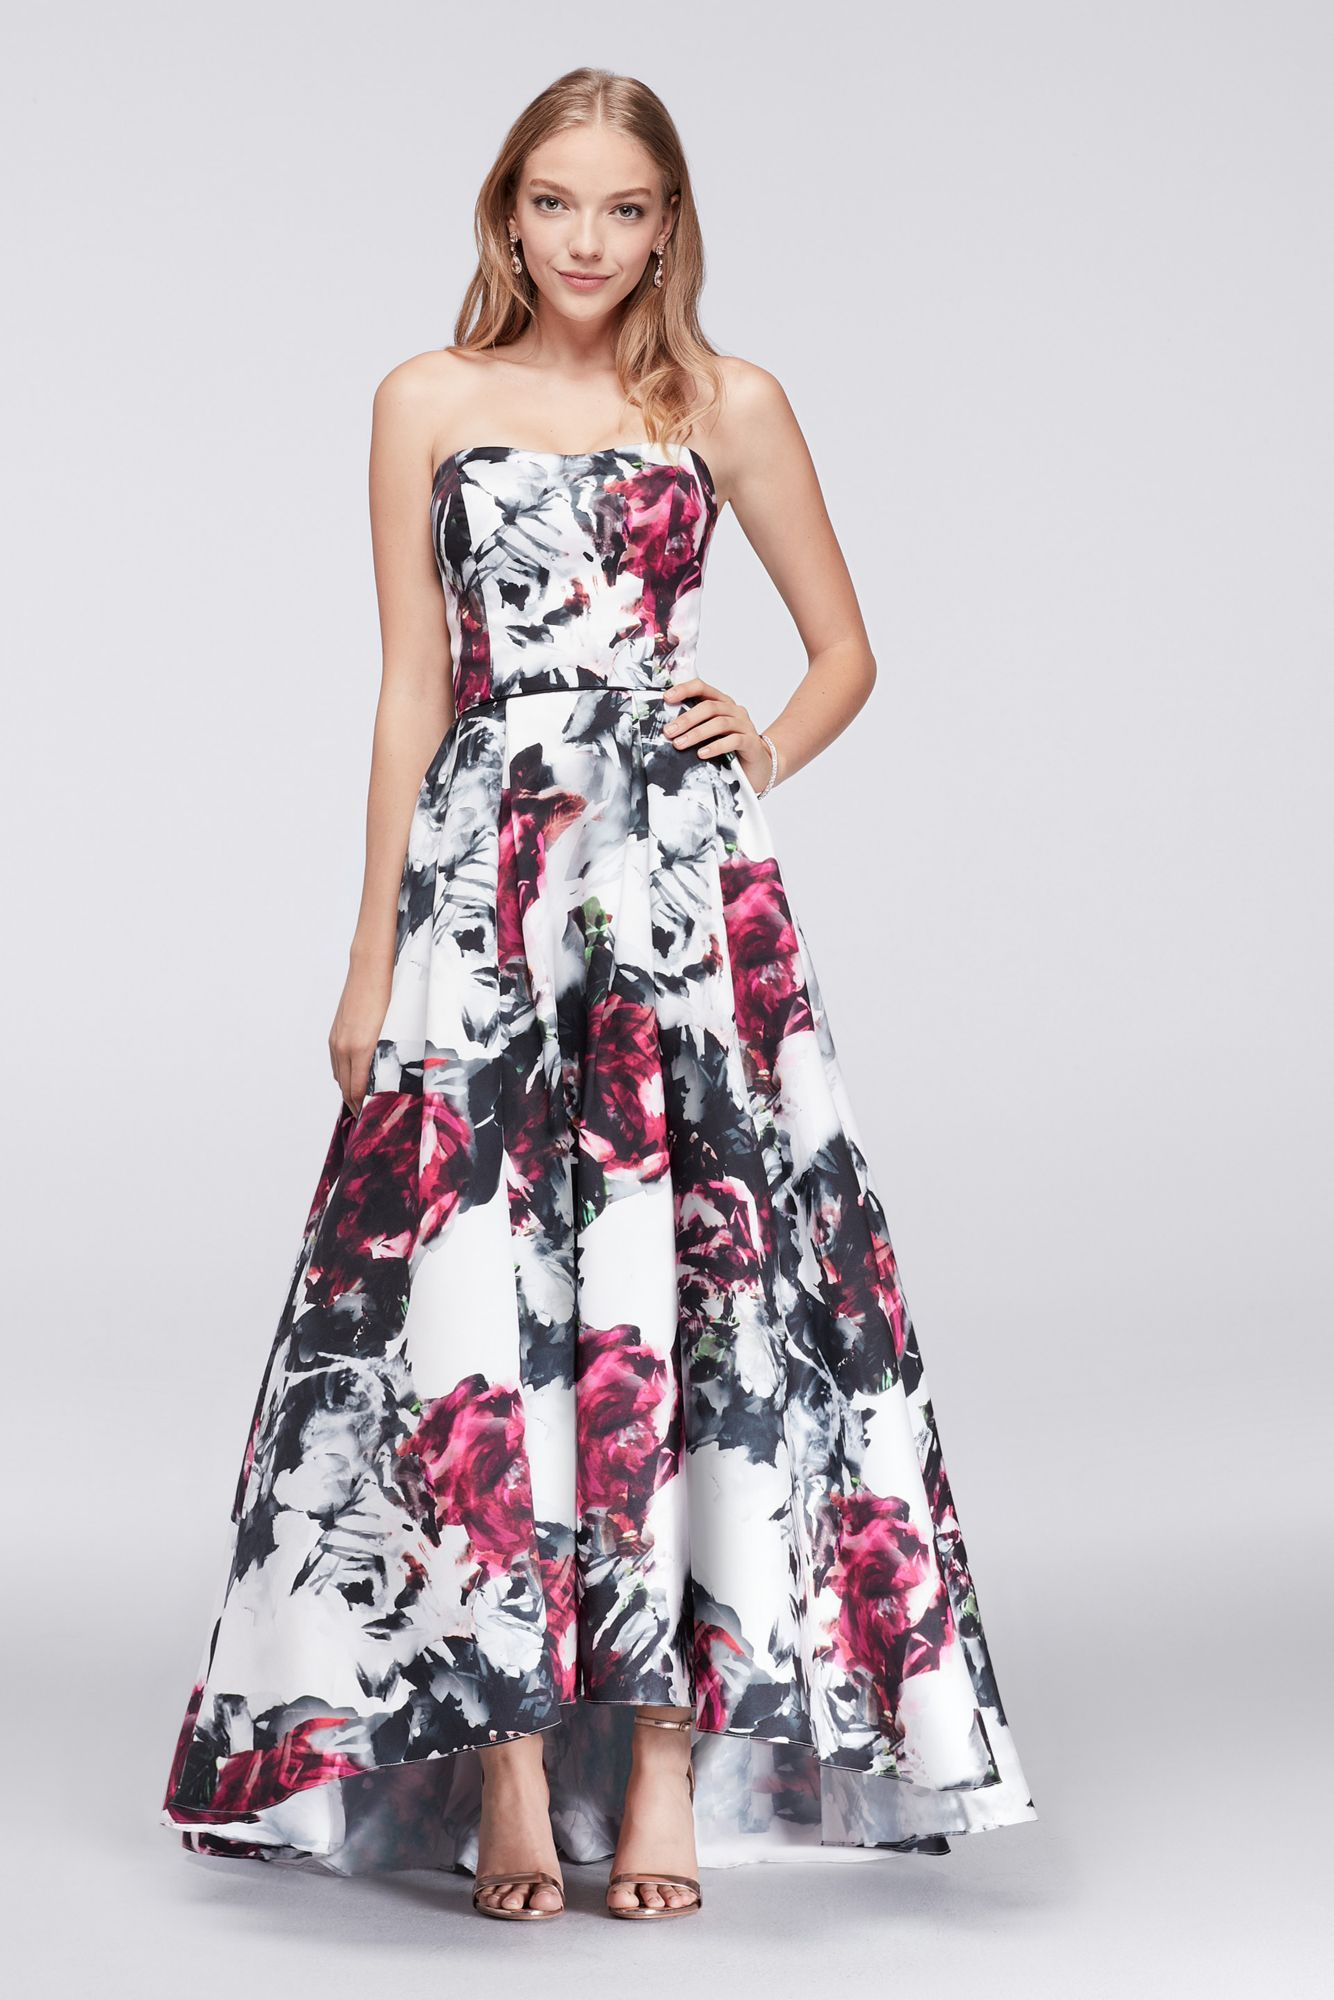 Charming New Style Strapless Sweetheart Neckline High Low Floral